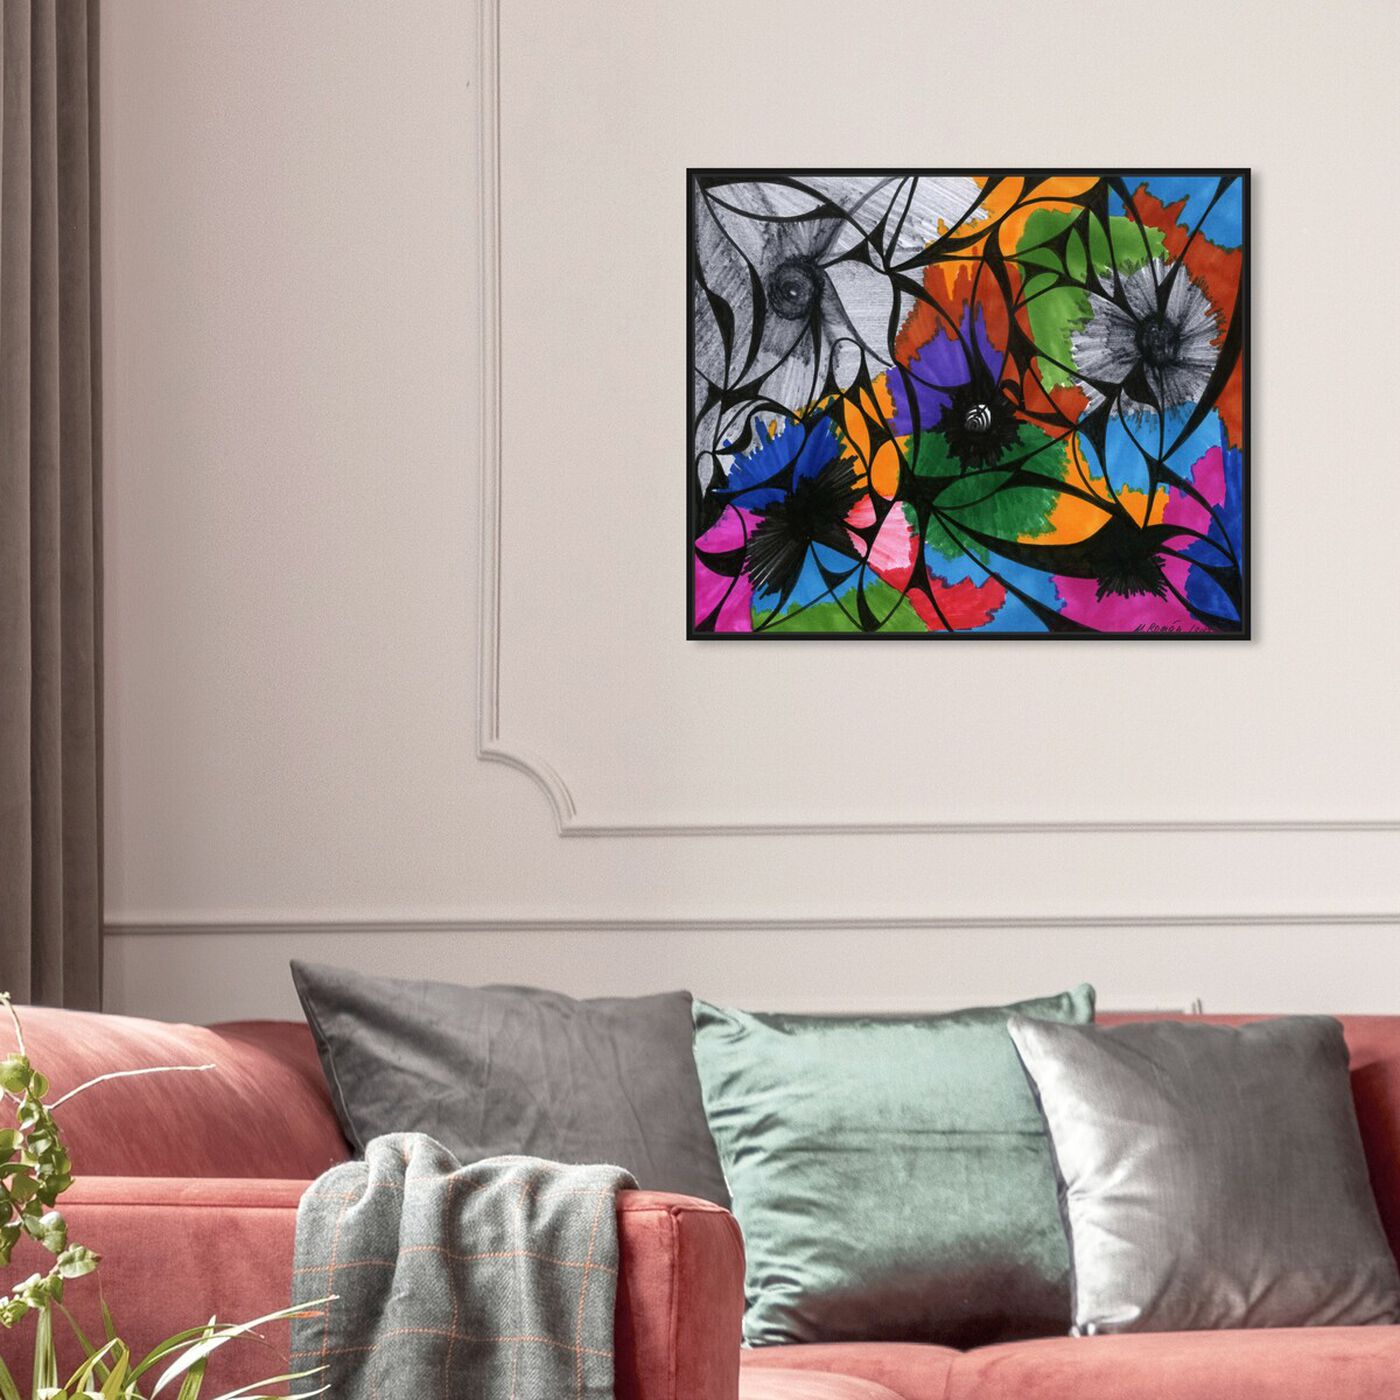 Hanging view of Summer Bloom featuring abstract and flowers art.